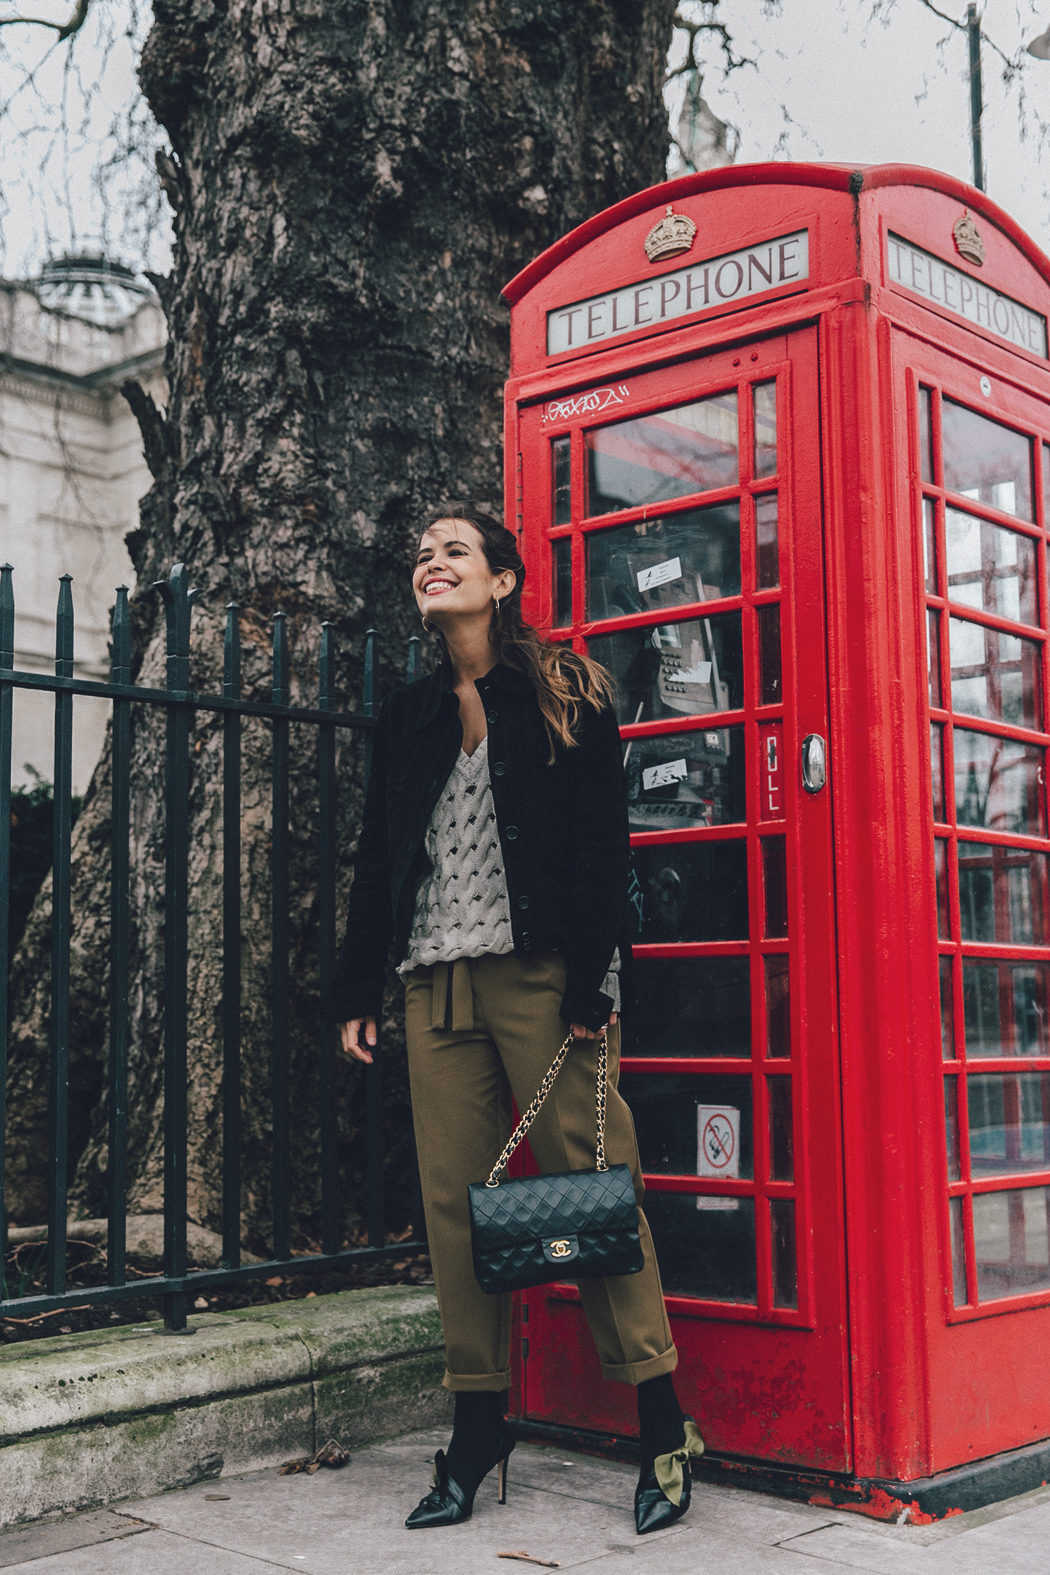 Topshop_Unique-Khaki_Trousers-VNeck_Sweater-Suede_Jacket-Bow_Shoes-Outfit-LFW-London_Fashion_Week_Fall_2016-Street_Style-29